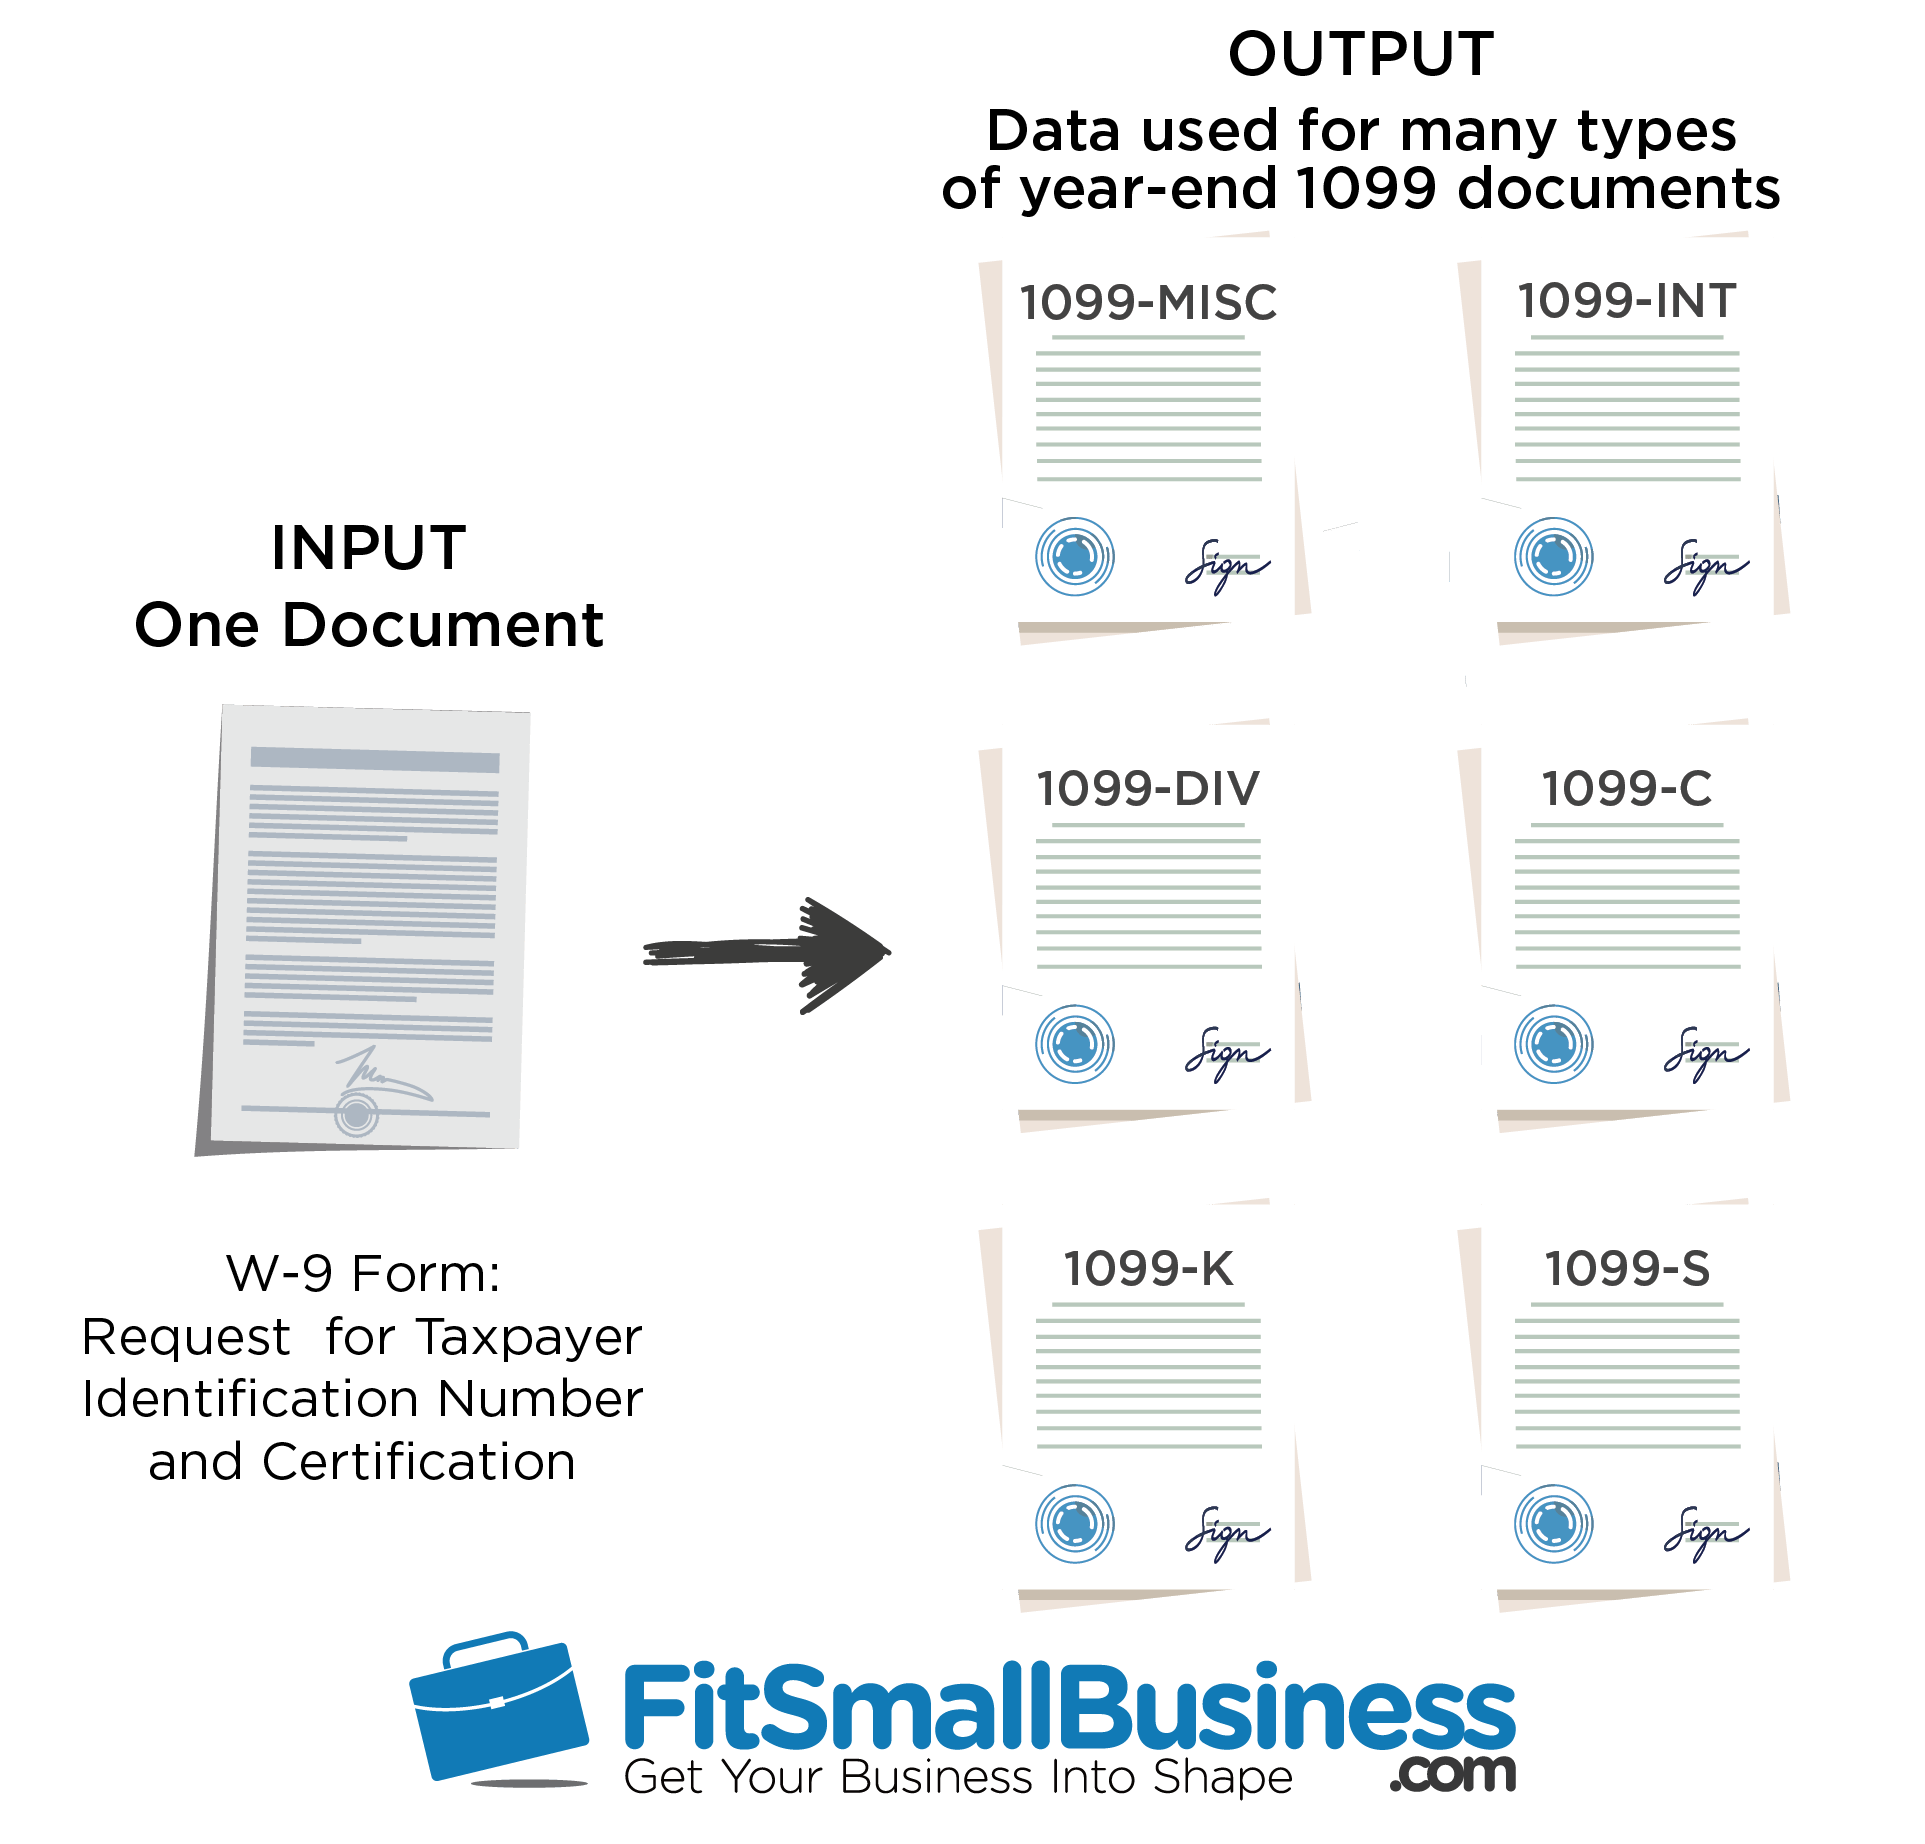 W9 Vs 1099: IRS Forms, Differences & When To Use Them 2018